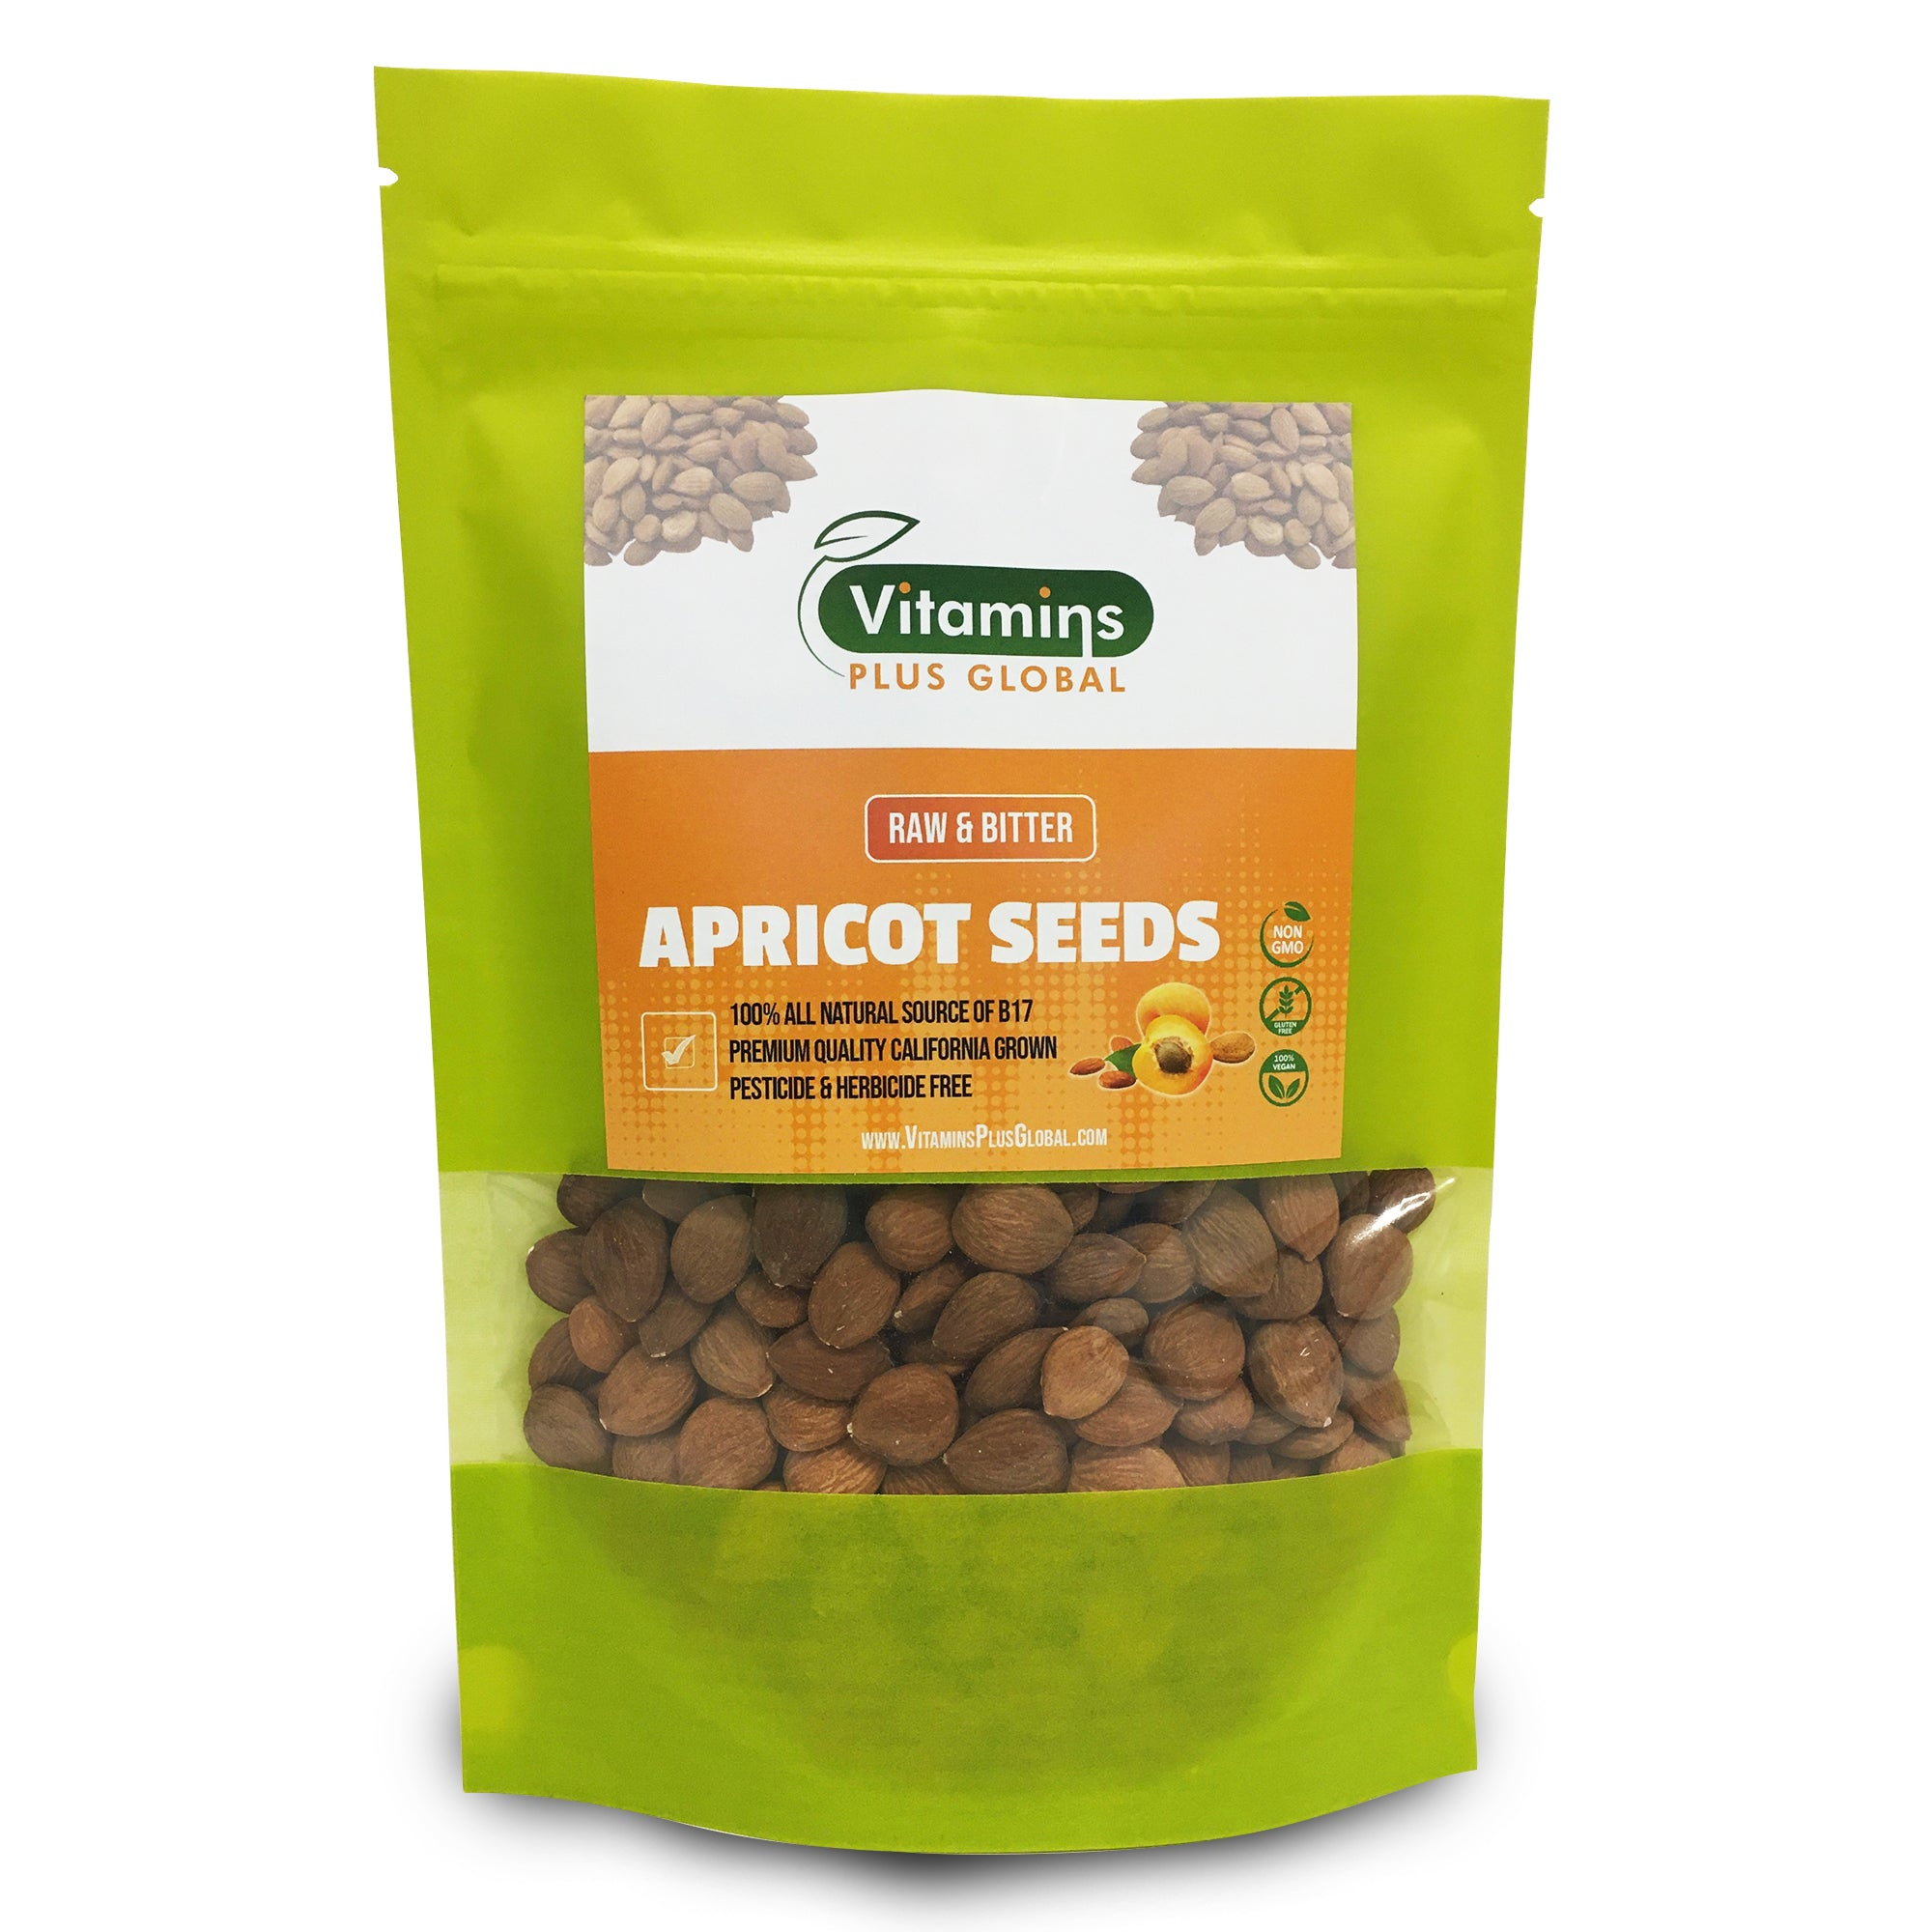 Bitter Apricot Seeds / Kernels, Natural Source of Vitamin B17, Large and Raw, Vegan, Non GMO, California Grown, Pesticide & Herbicide Free, In a Recyclable Stay Fresh Resealable Pouch 1lb